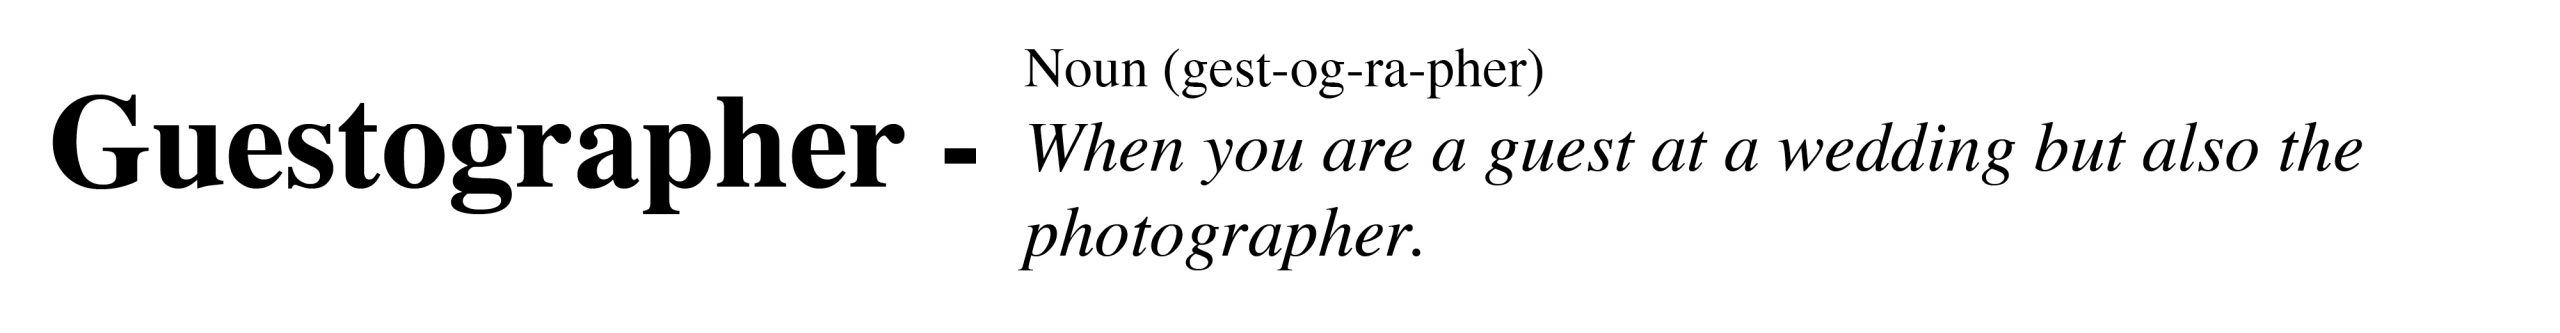 Definition on being a guestographer